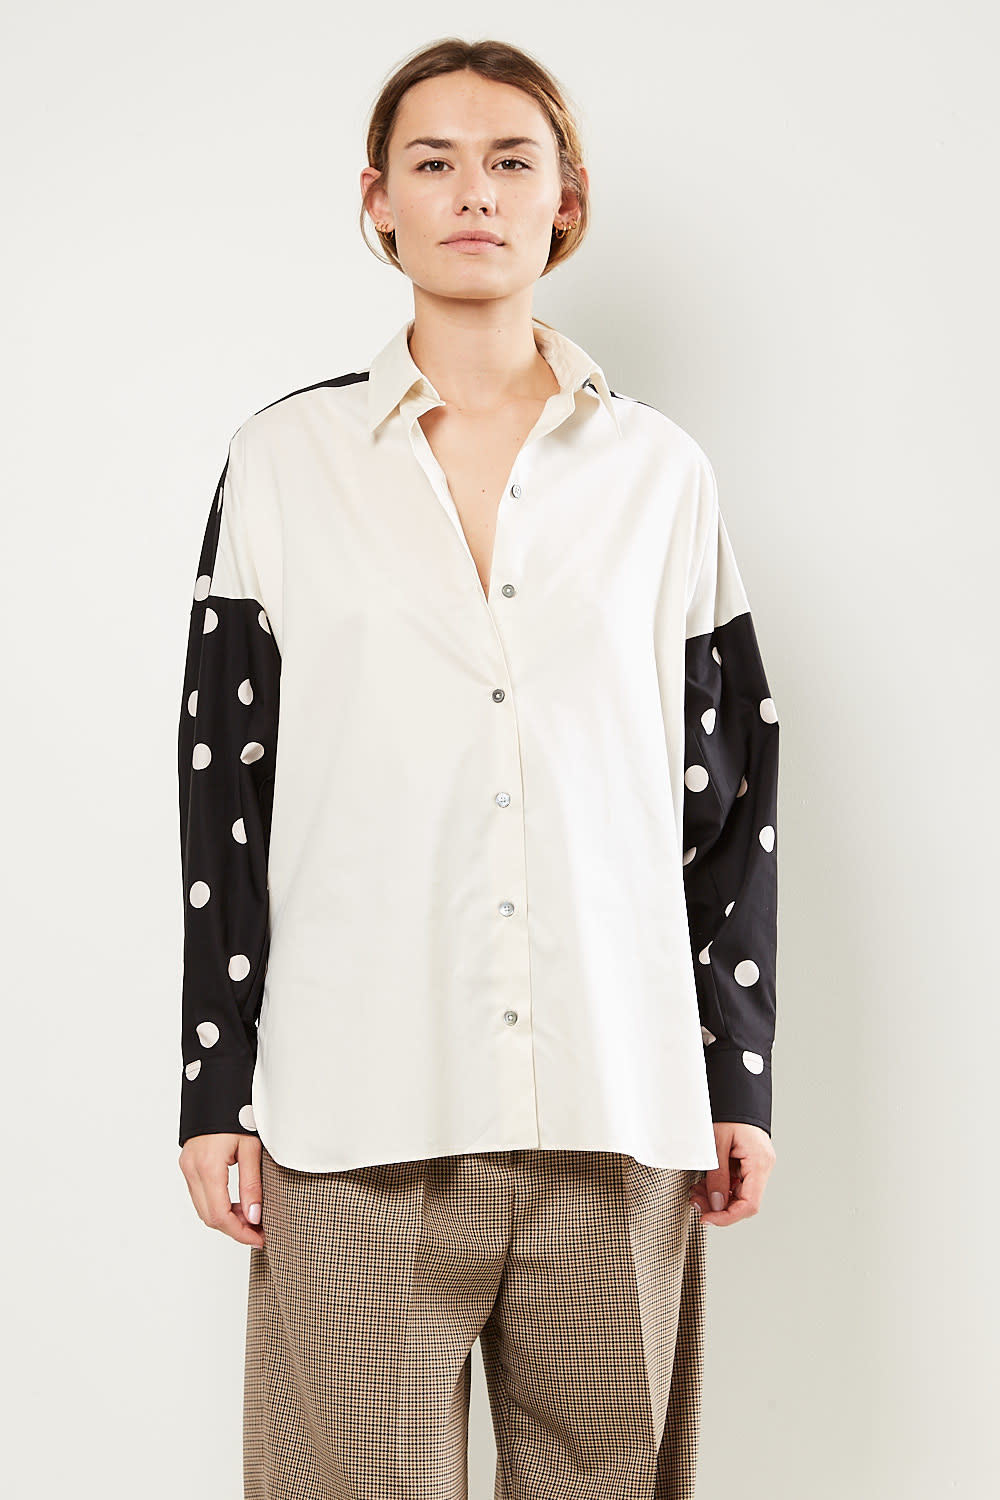 Paul Smith - Womens shirt